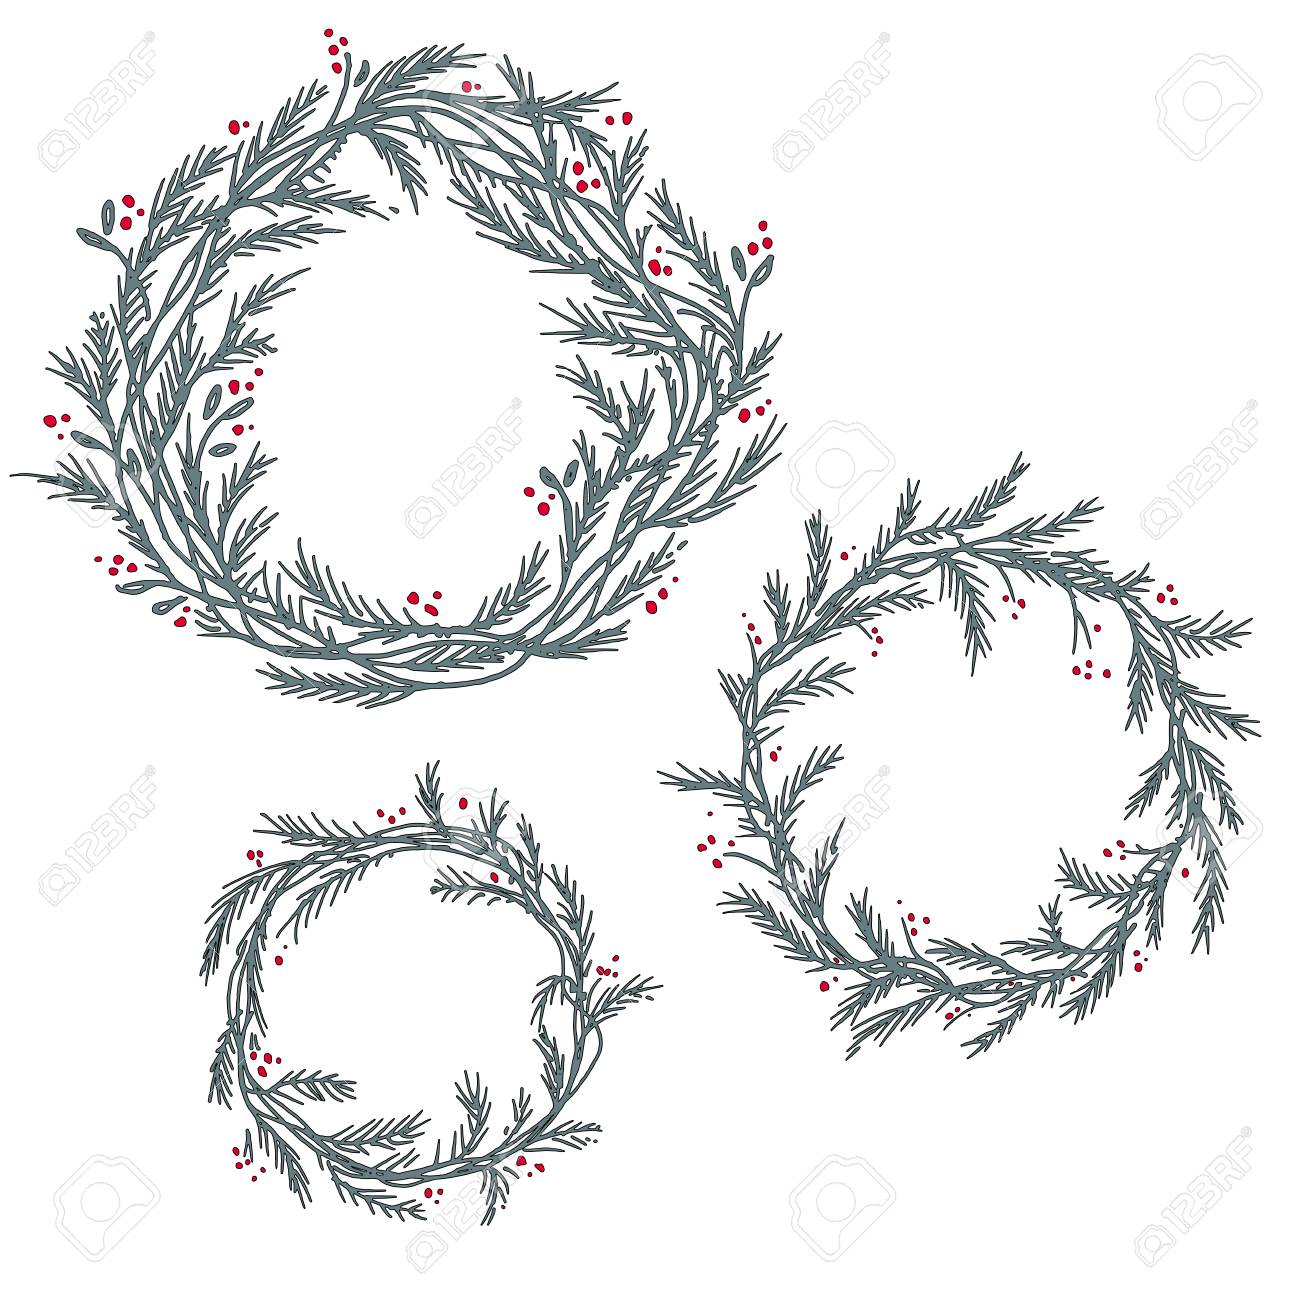 Christmas Wreath Silhouette.Set Of Silhouette Of Christmas Wreath Hand Drawn Branches And